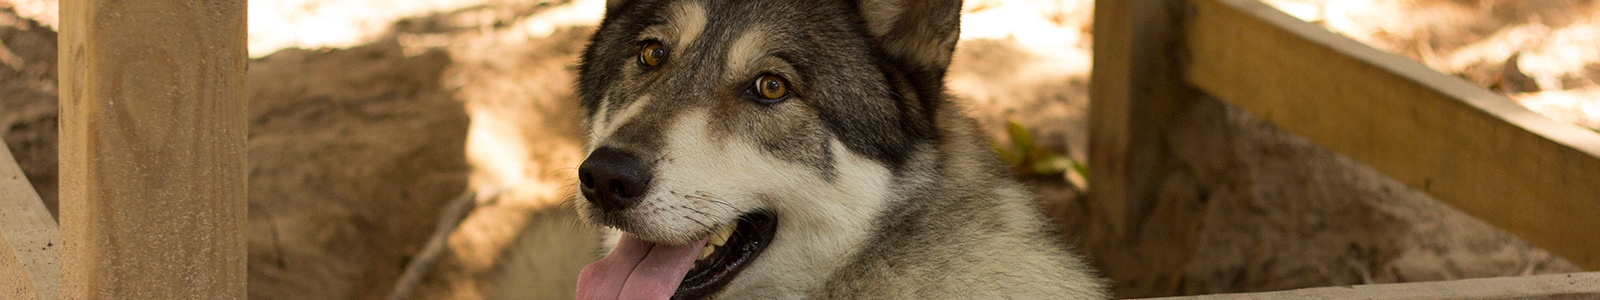 Texas Wolfdog Project Events + News Header Image